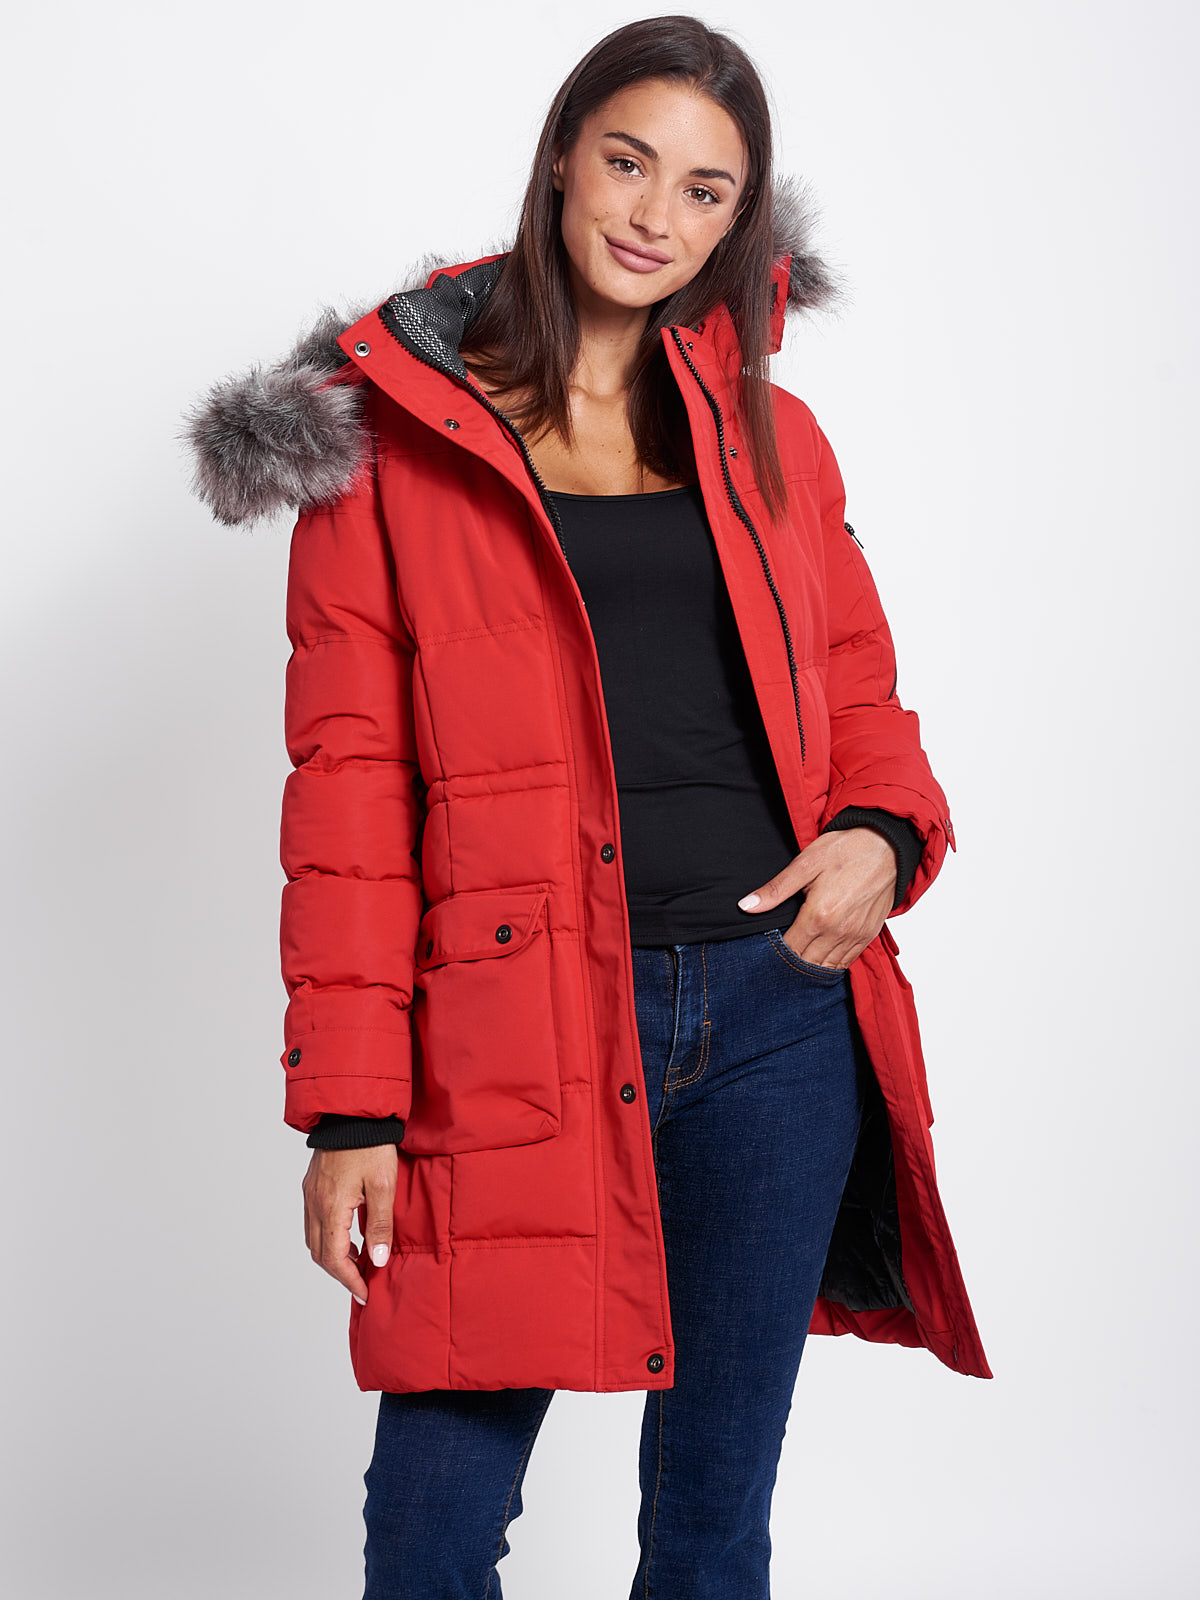 AZALEA WOMENS PARKA RED COAT